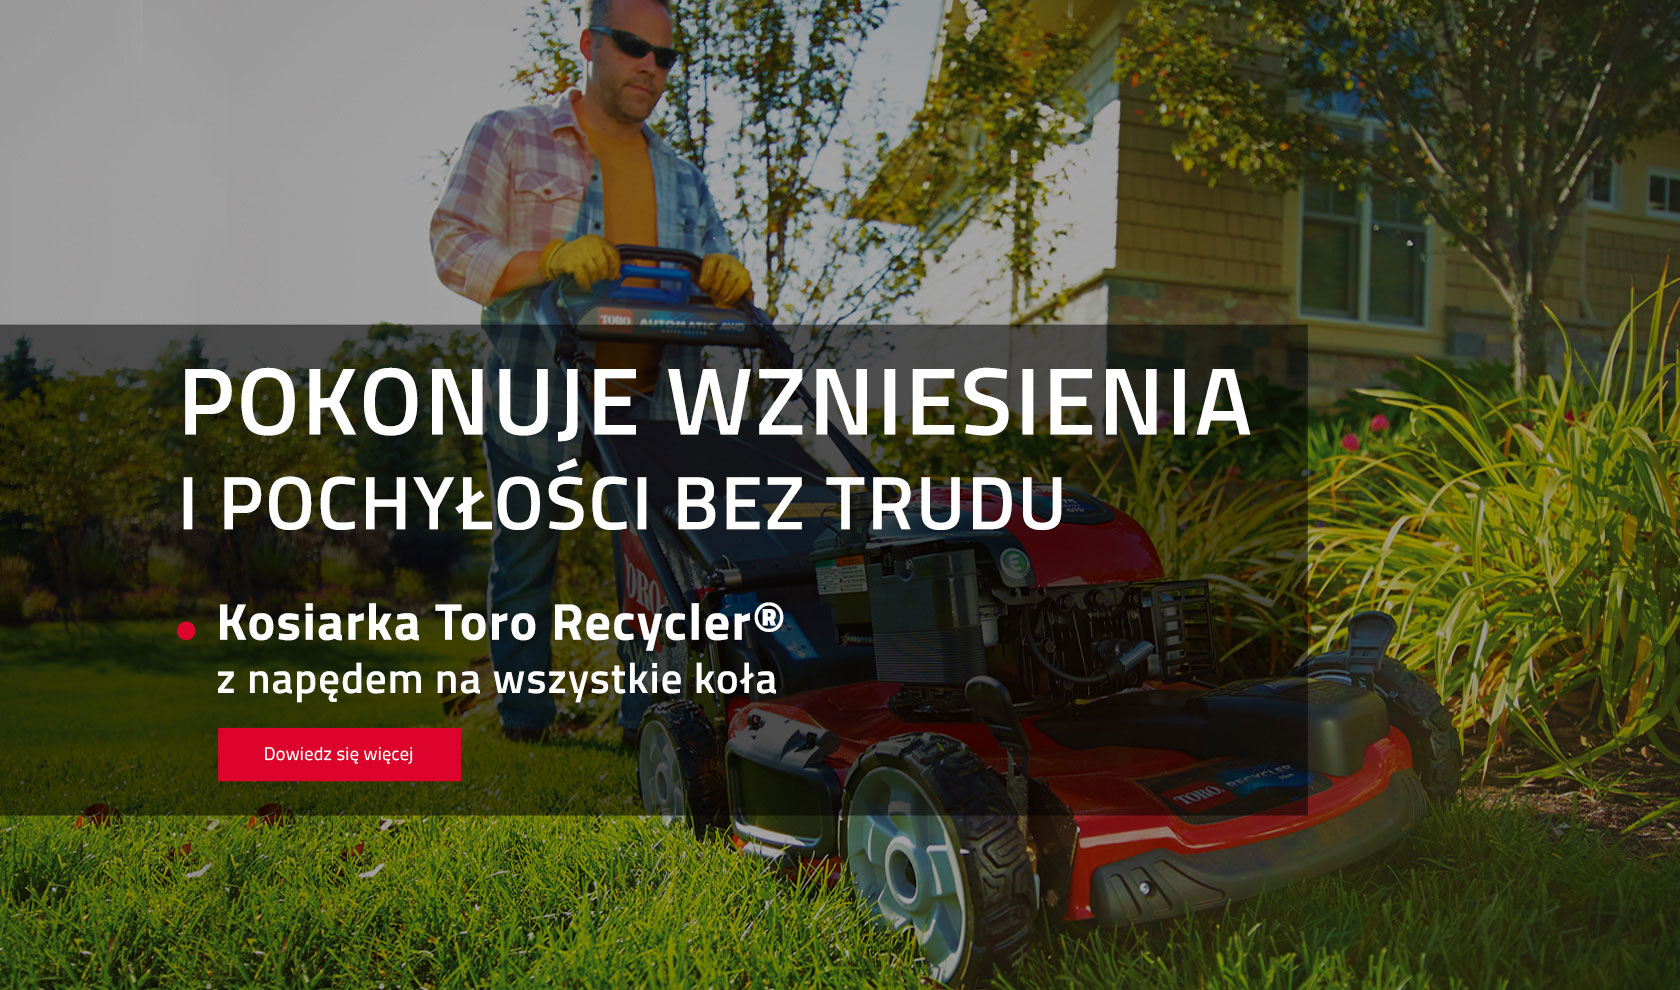 Kosiarka Toro Recyckler All Wheel Drive